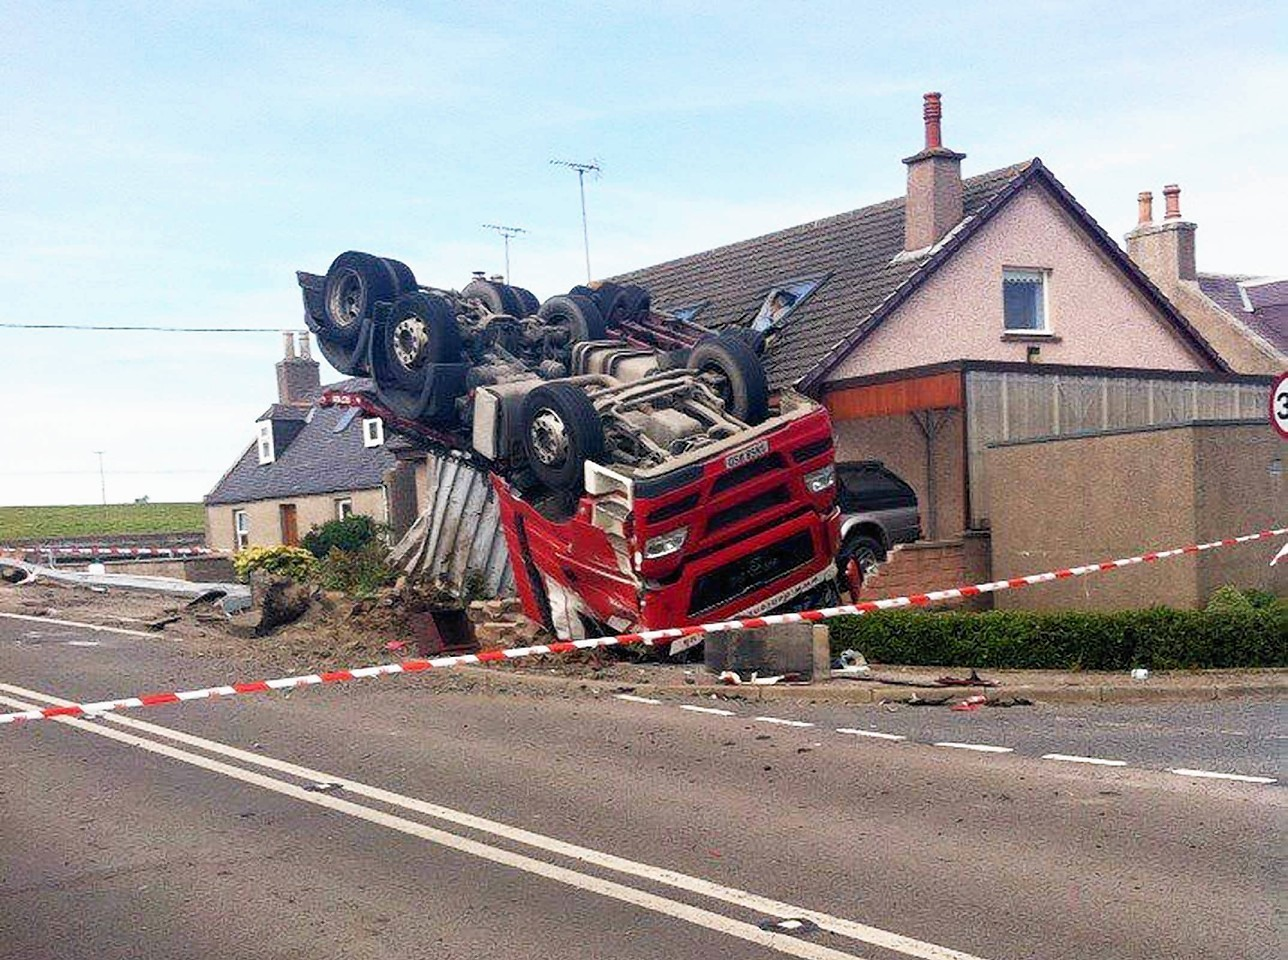 The lorry that overturned at Cortes.